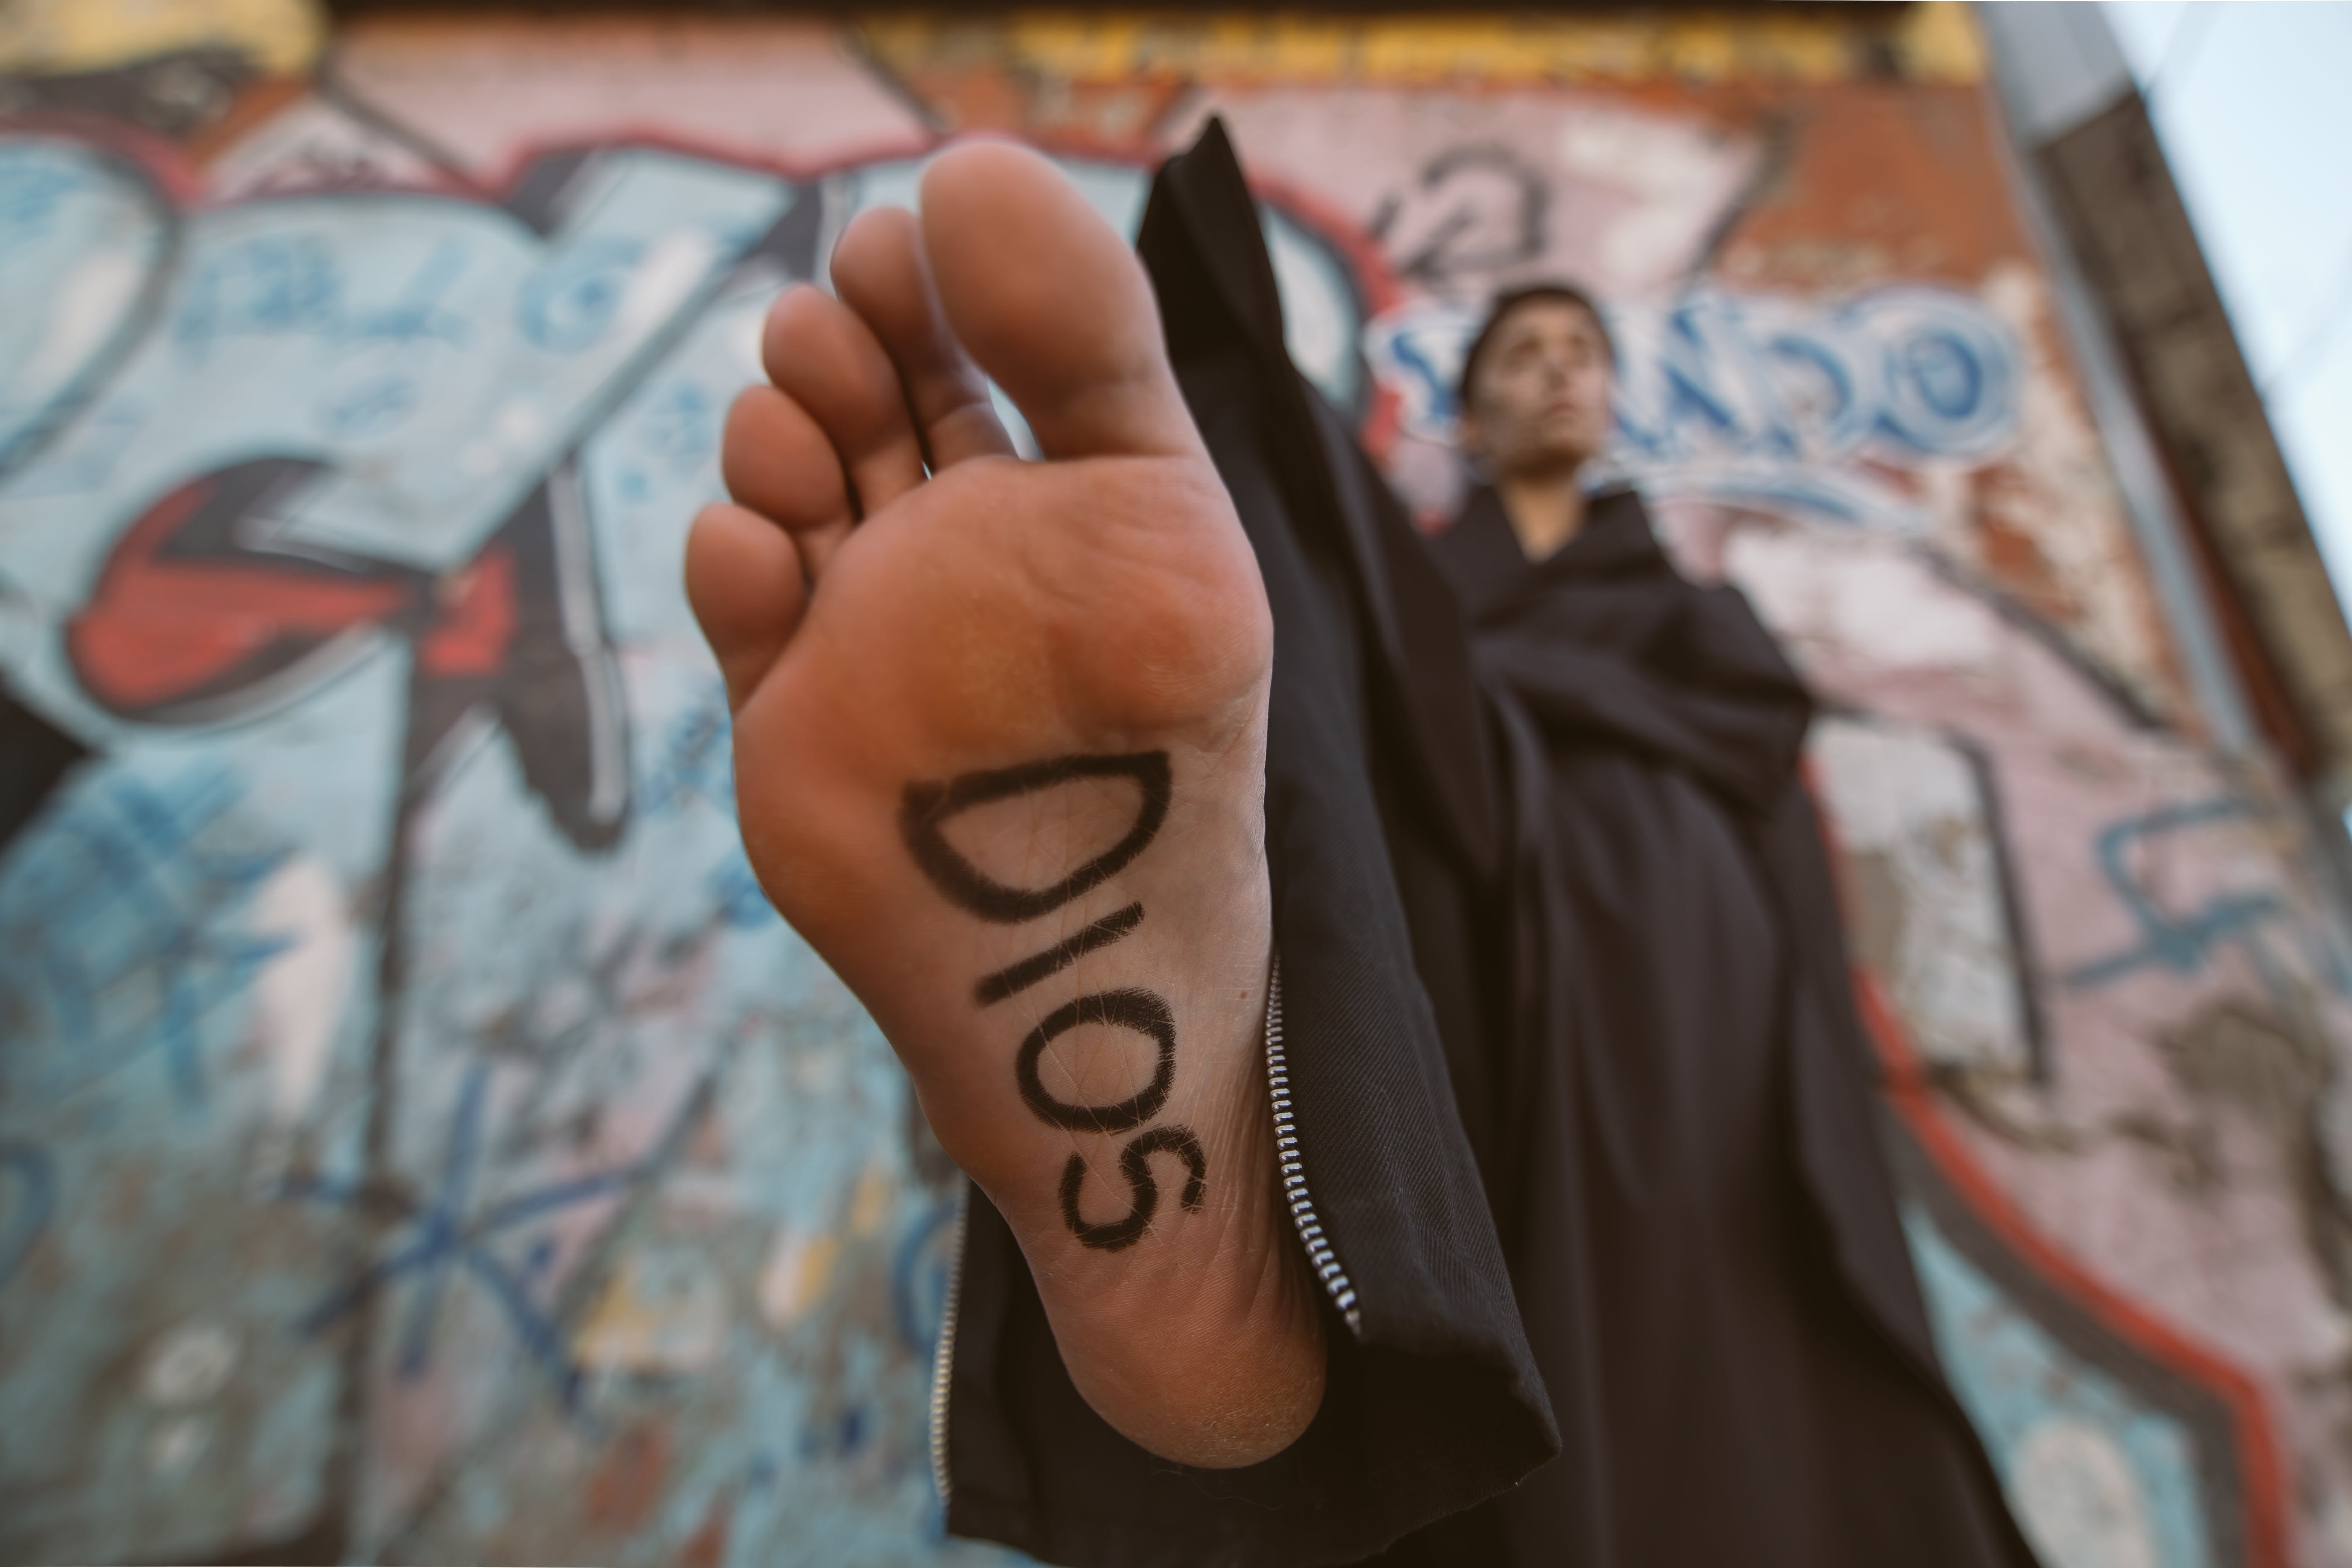 Person Wearing Black Robe With Sign on Foot